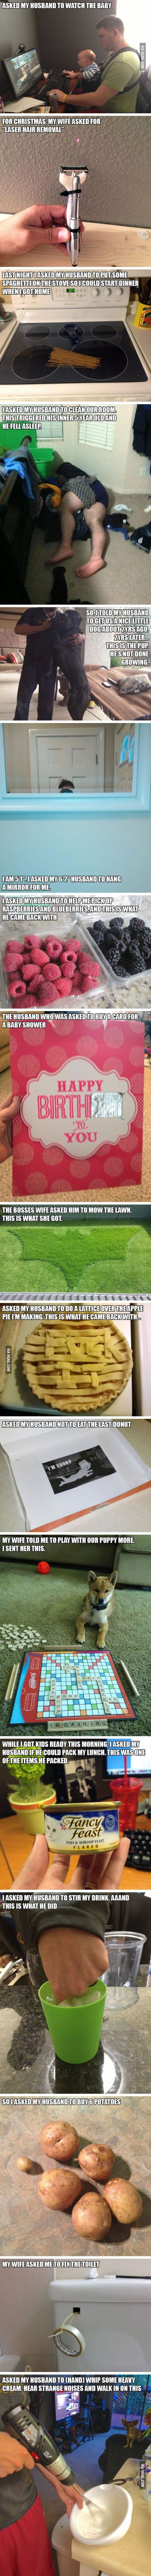 17 Images That Prove Husbands Just Can't Follow Directions